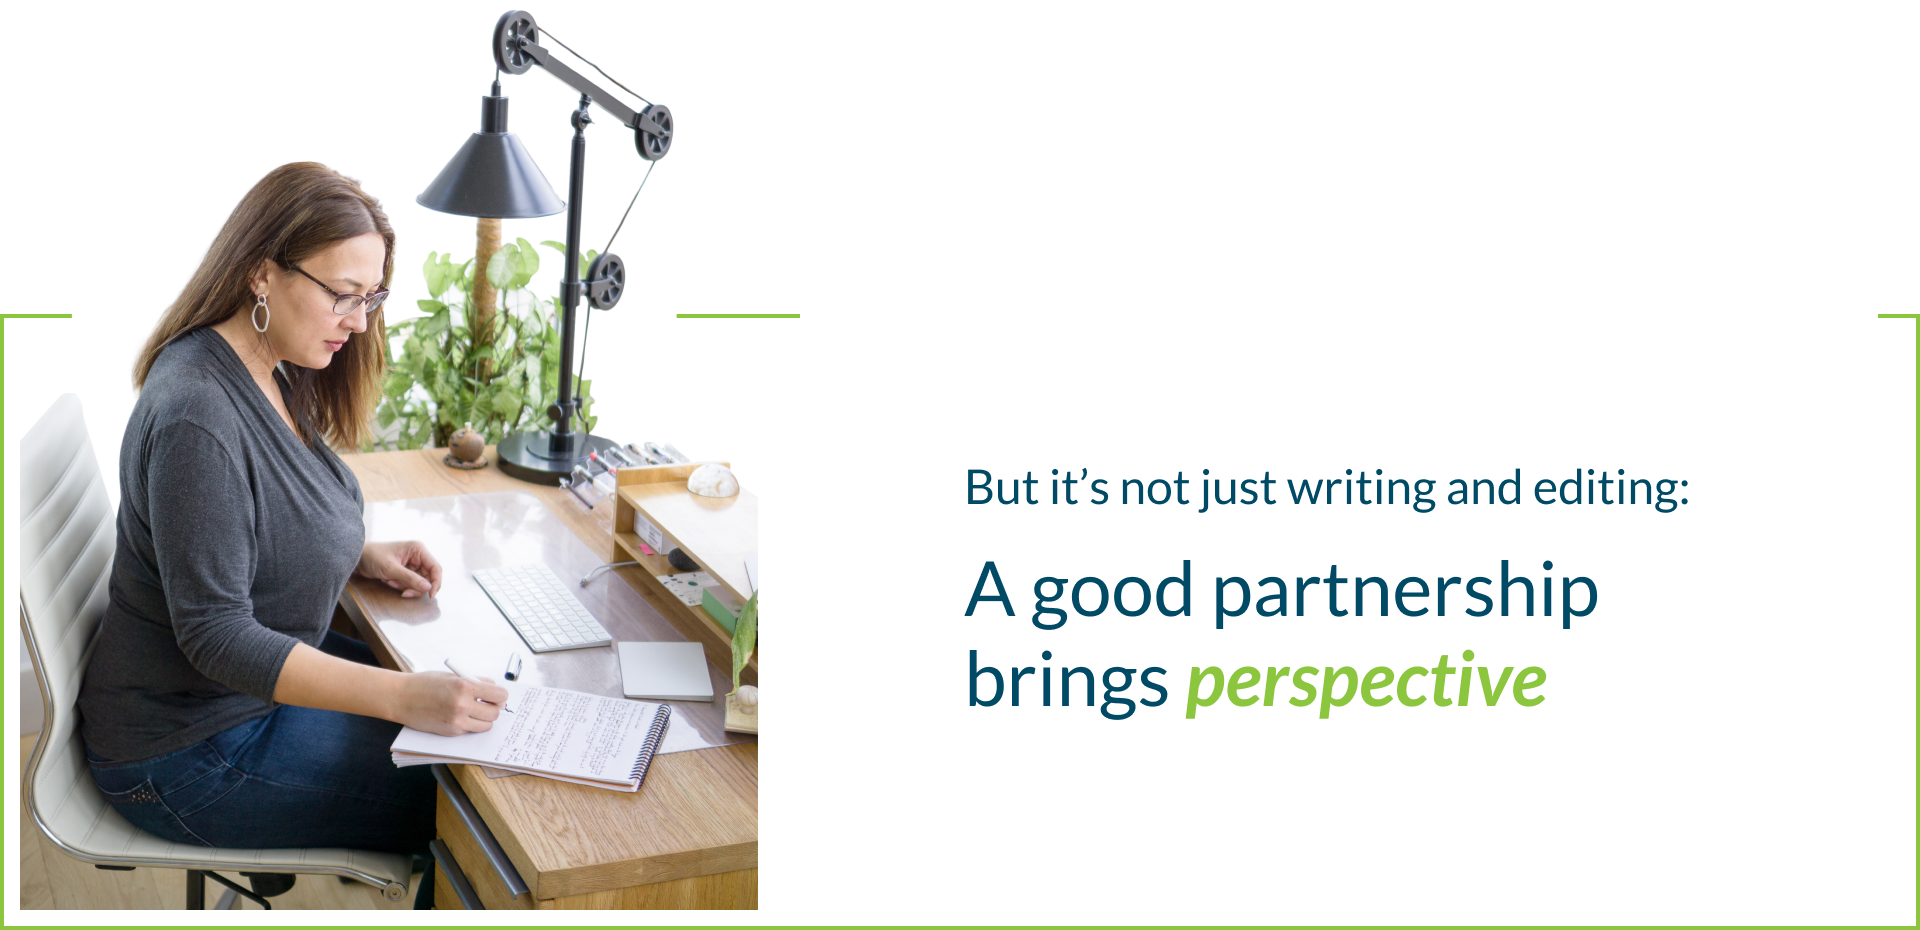 But it's not just writing and editing: A good partnership brings perspective.